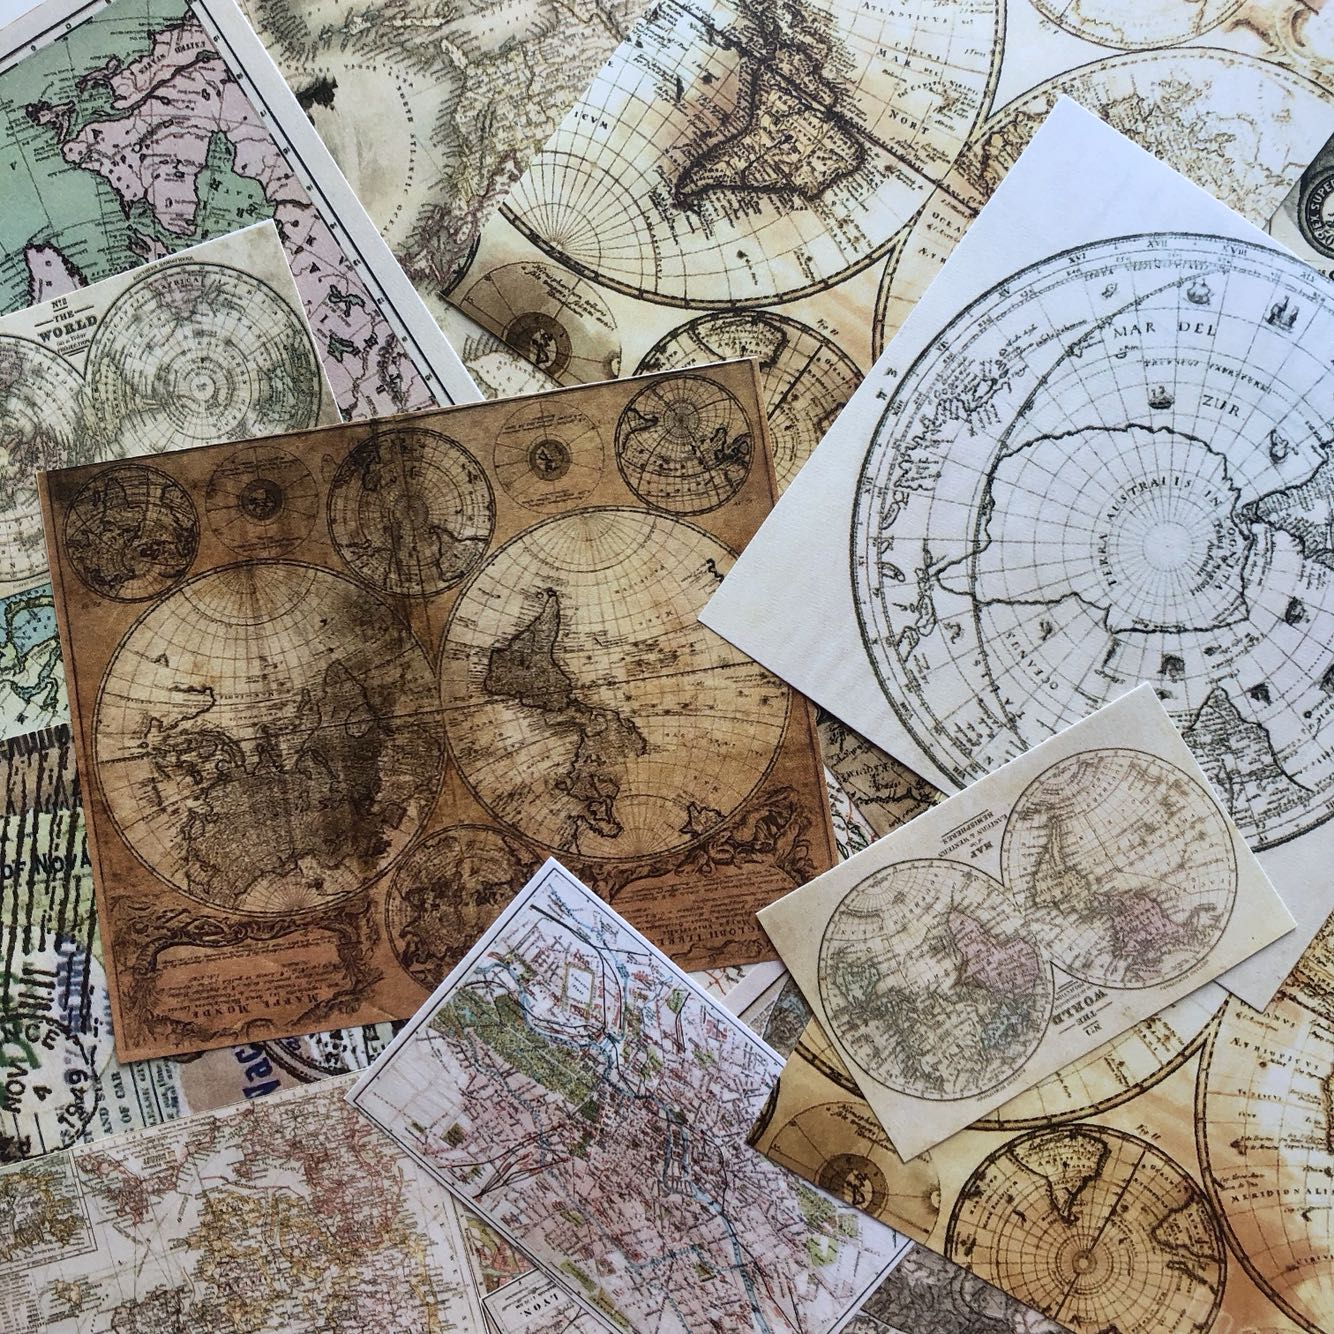 25pcs/pack Retro Earth Map Vintage Kraft Paper Stationery Material Paper Set For Scrapbooking DIY Projects/Photo Journal